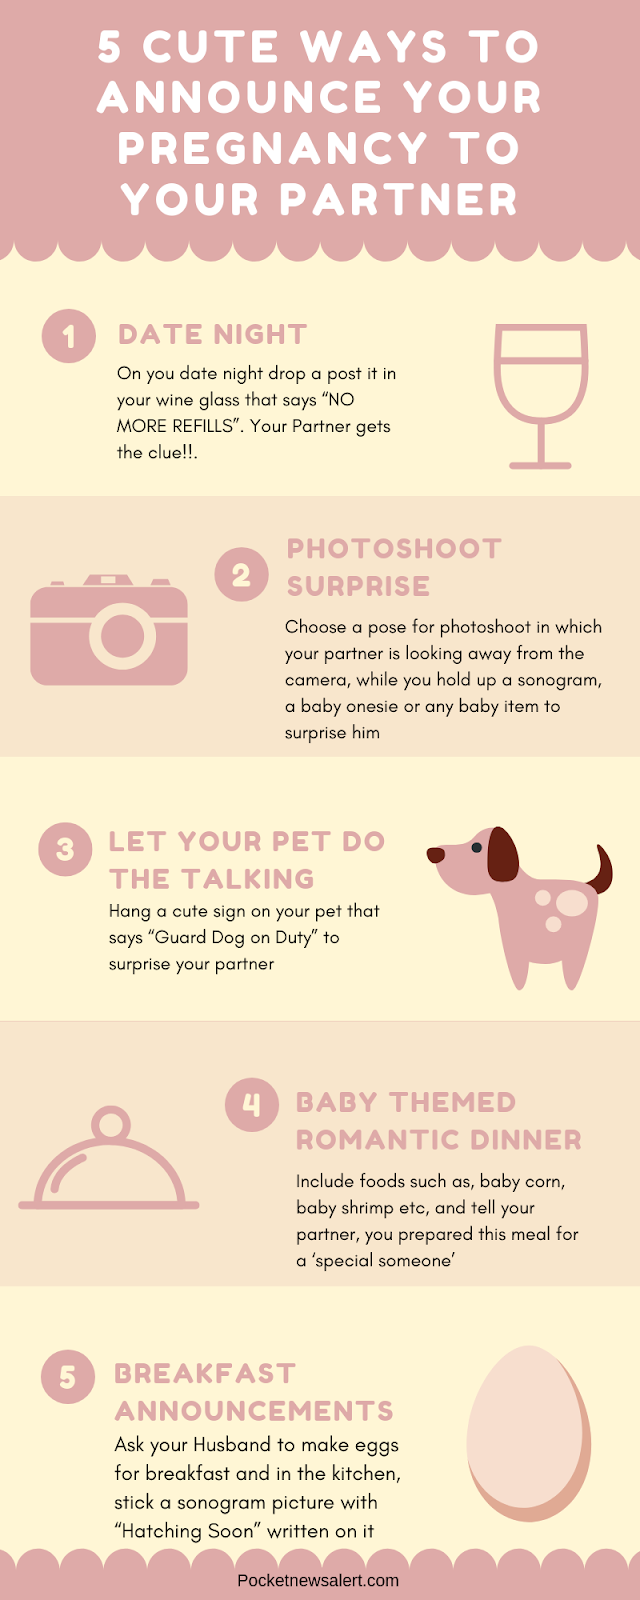 5 Funny Pregnancy Announcement Ideas for your Partner